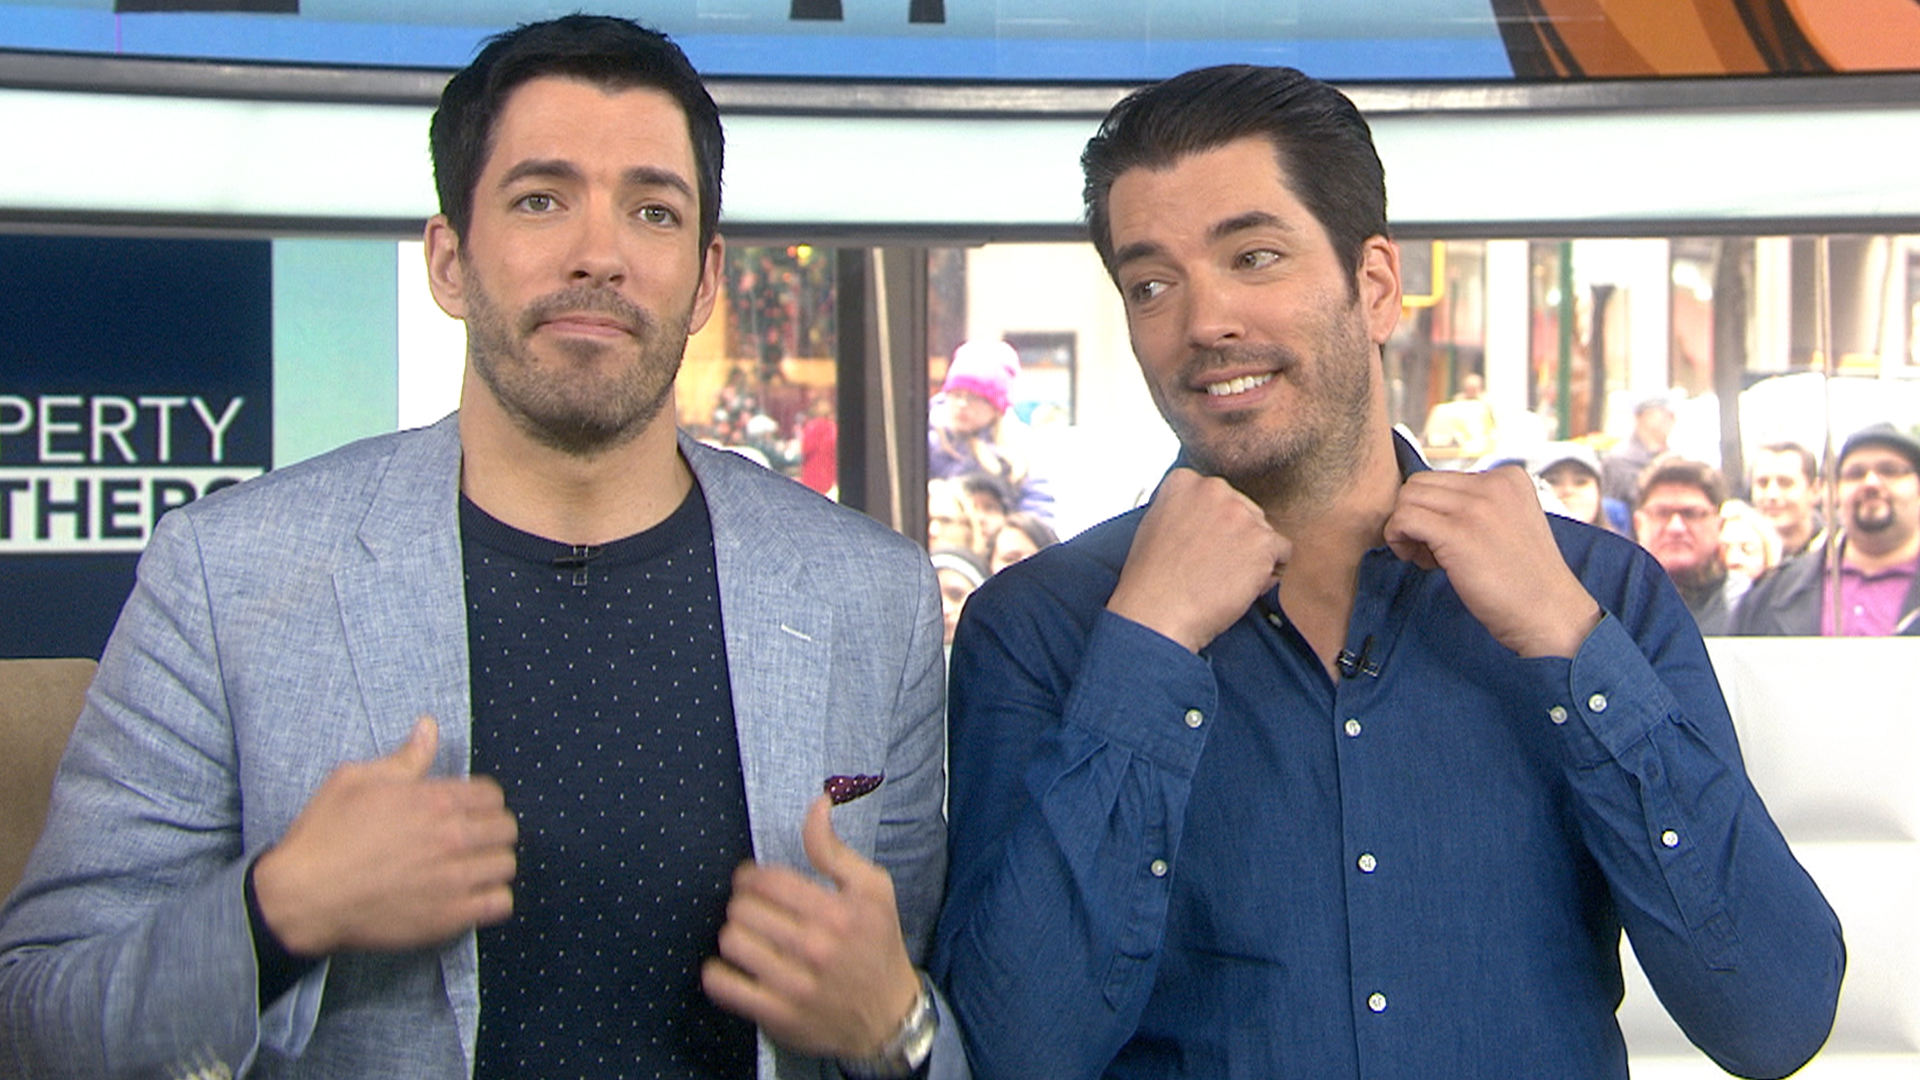 Property Brothers Show How To Make Padded Headboard